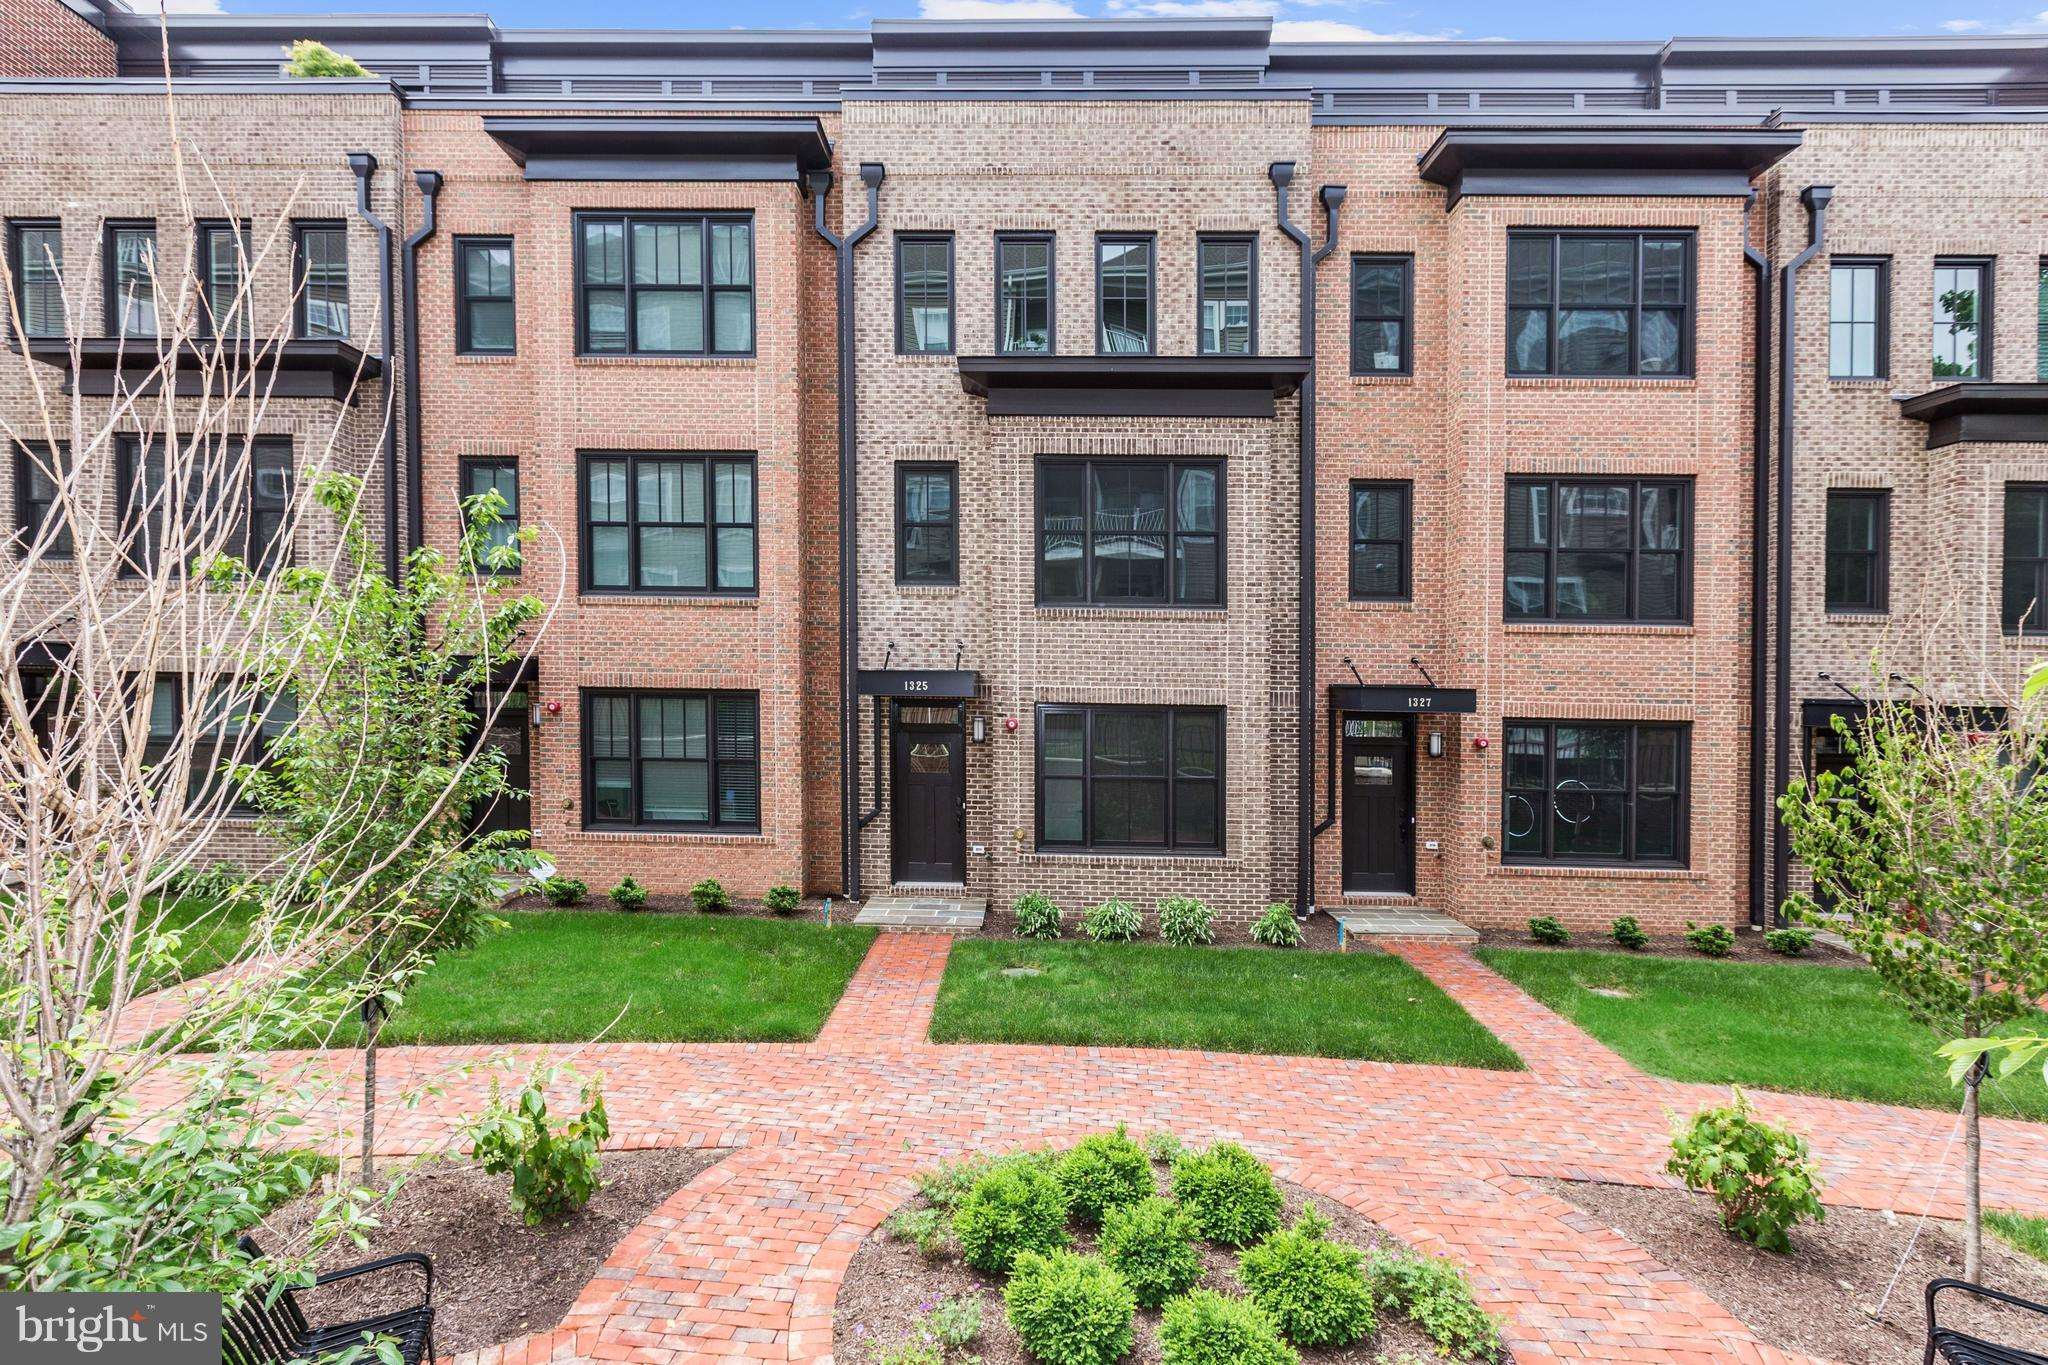 Call Colleen today to schedule your tour! 703.334.3385. Cambridge Model features a 1st flr BR w/ FB, Gourmet kit, w/ GE Monogram SS apps, carrara marble, a 10' ft waterfall island, ext 12' X 21' deck off main lvl & much more!